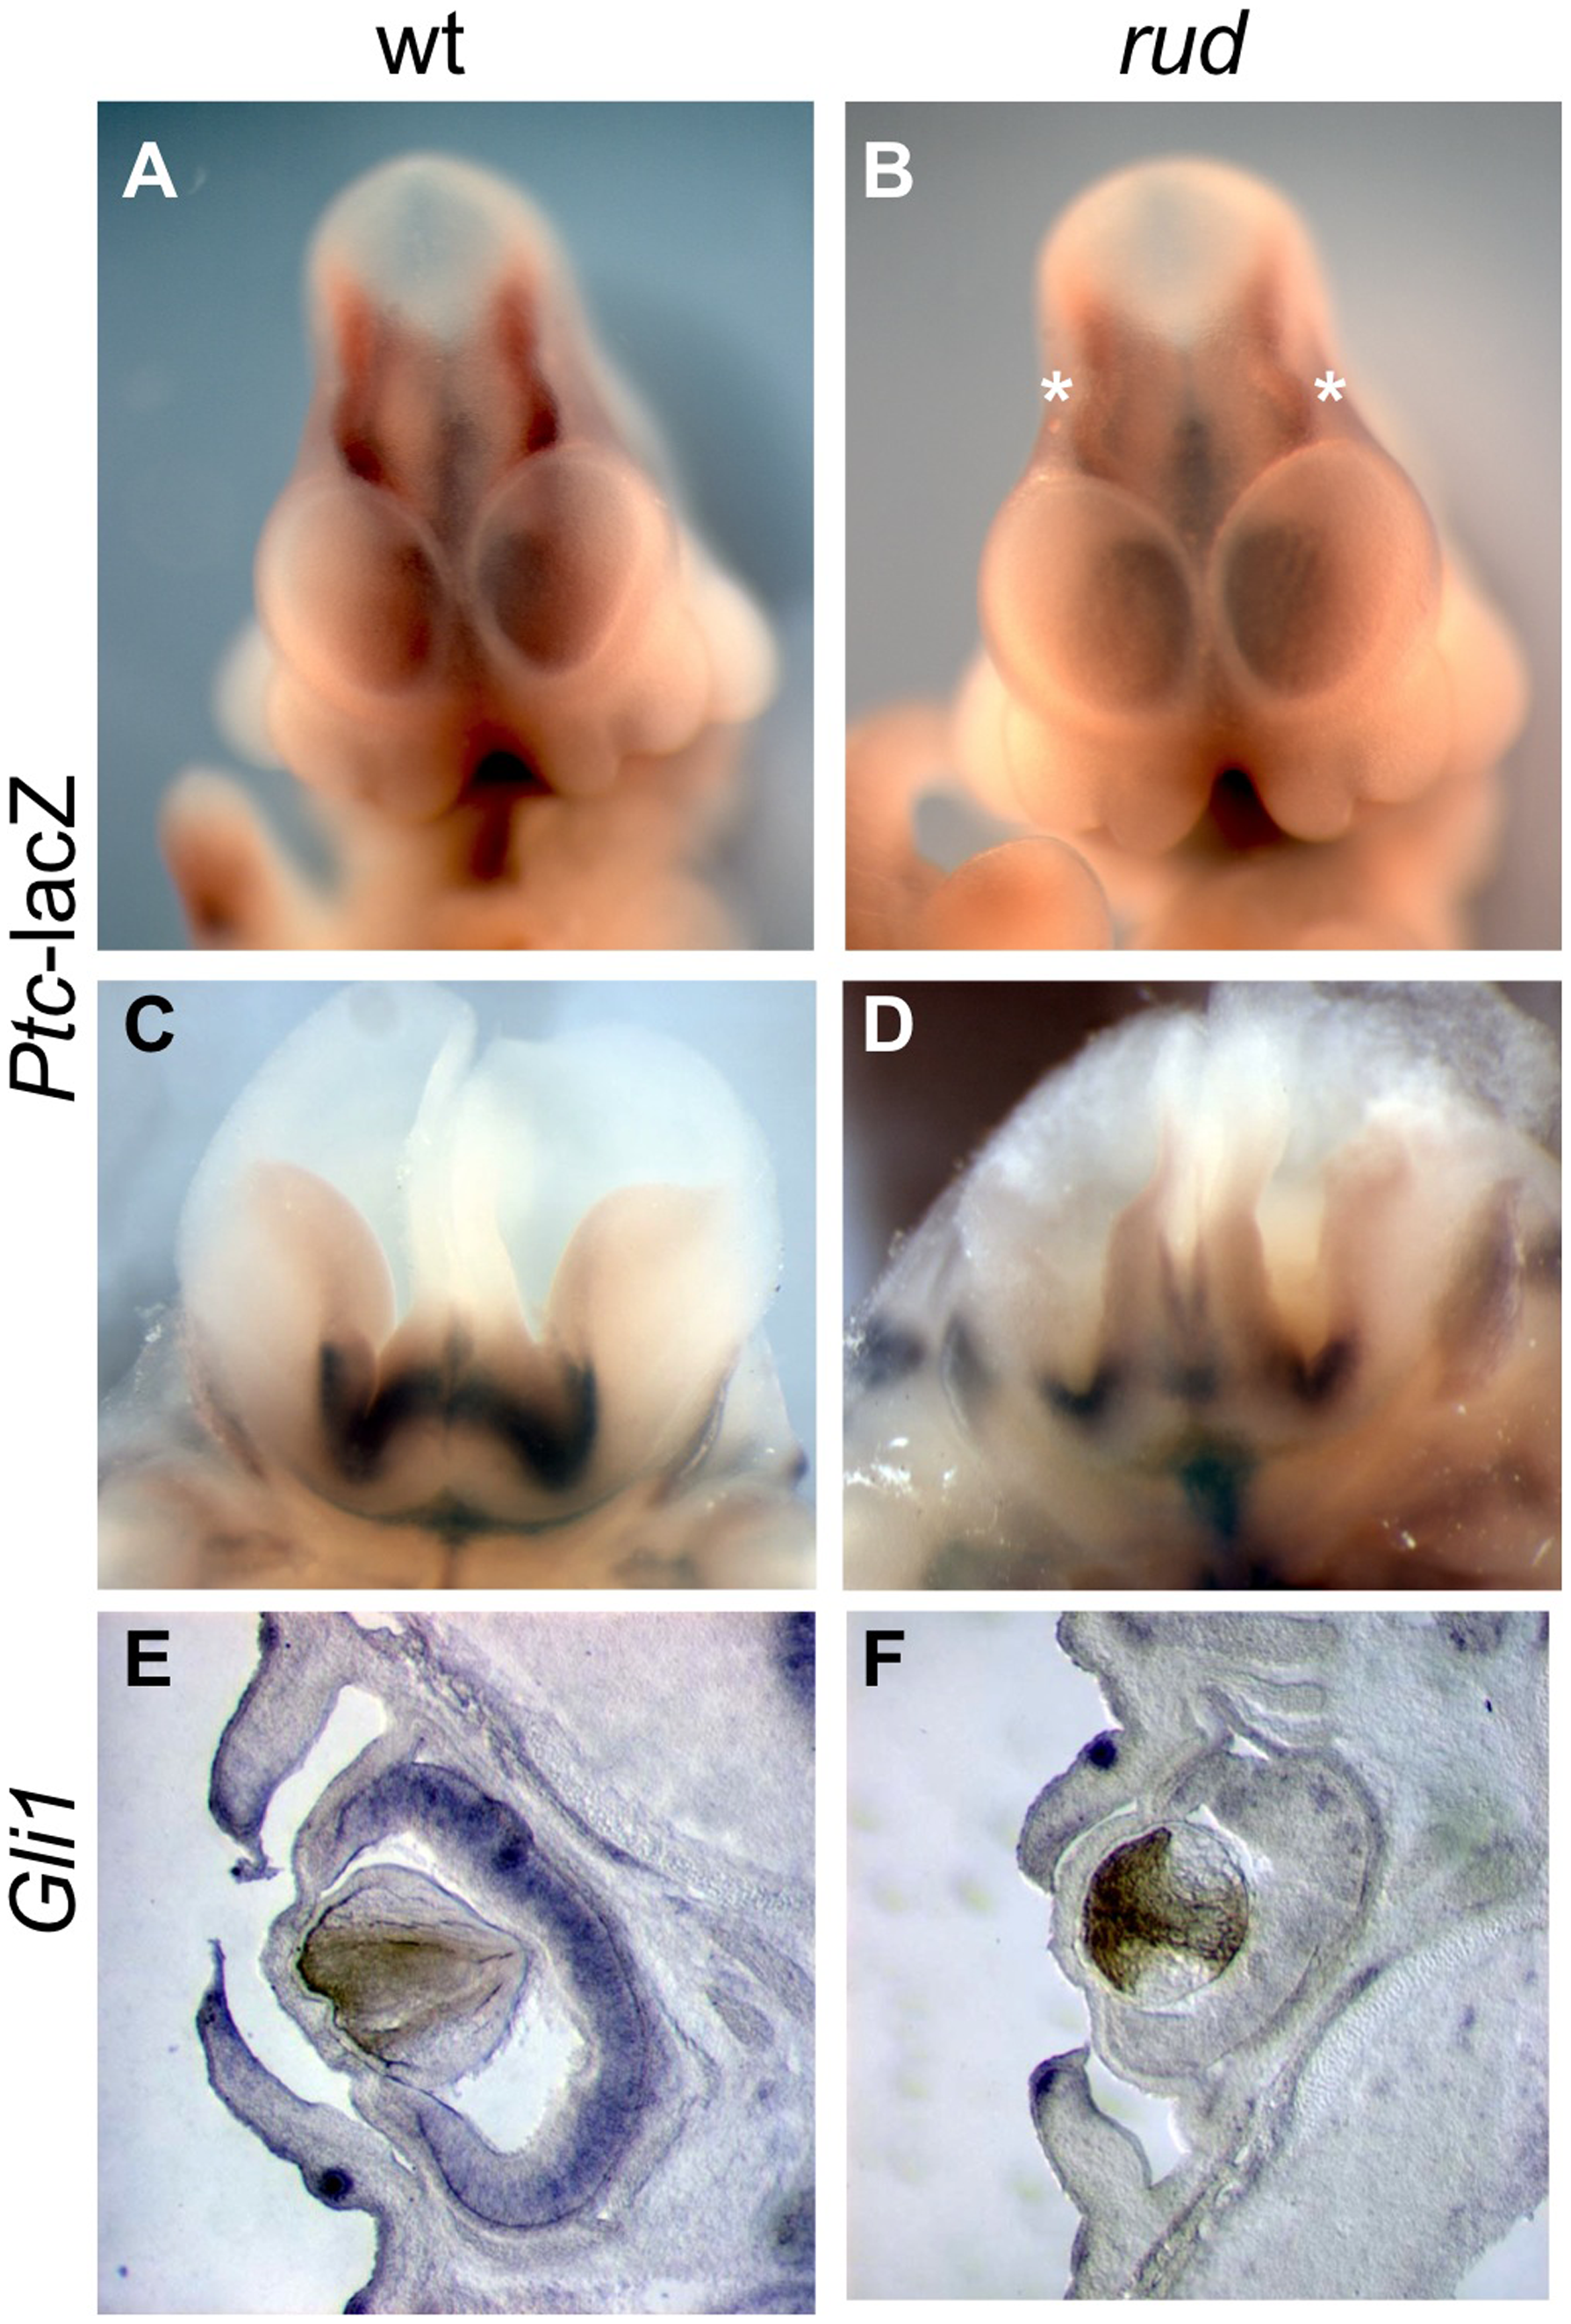 <i>Sonic hedgehog</i> signal transduction is abnormal in <i>rudolph</i> embryonic nervous system and cells.